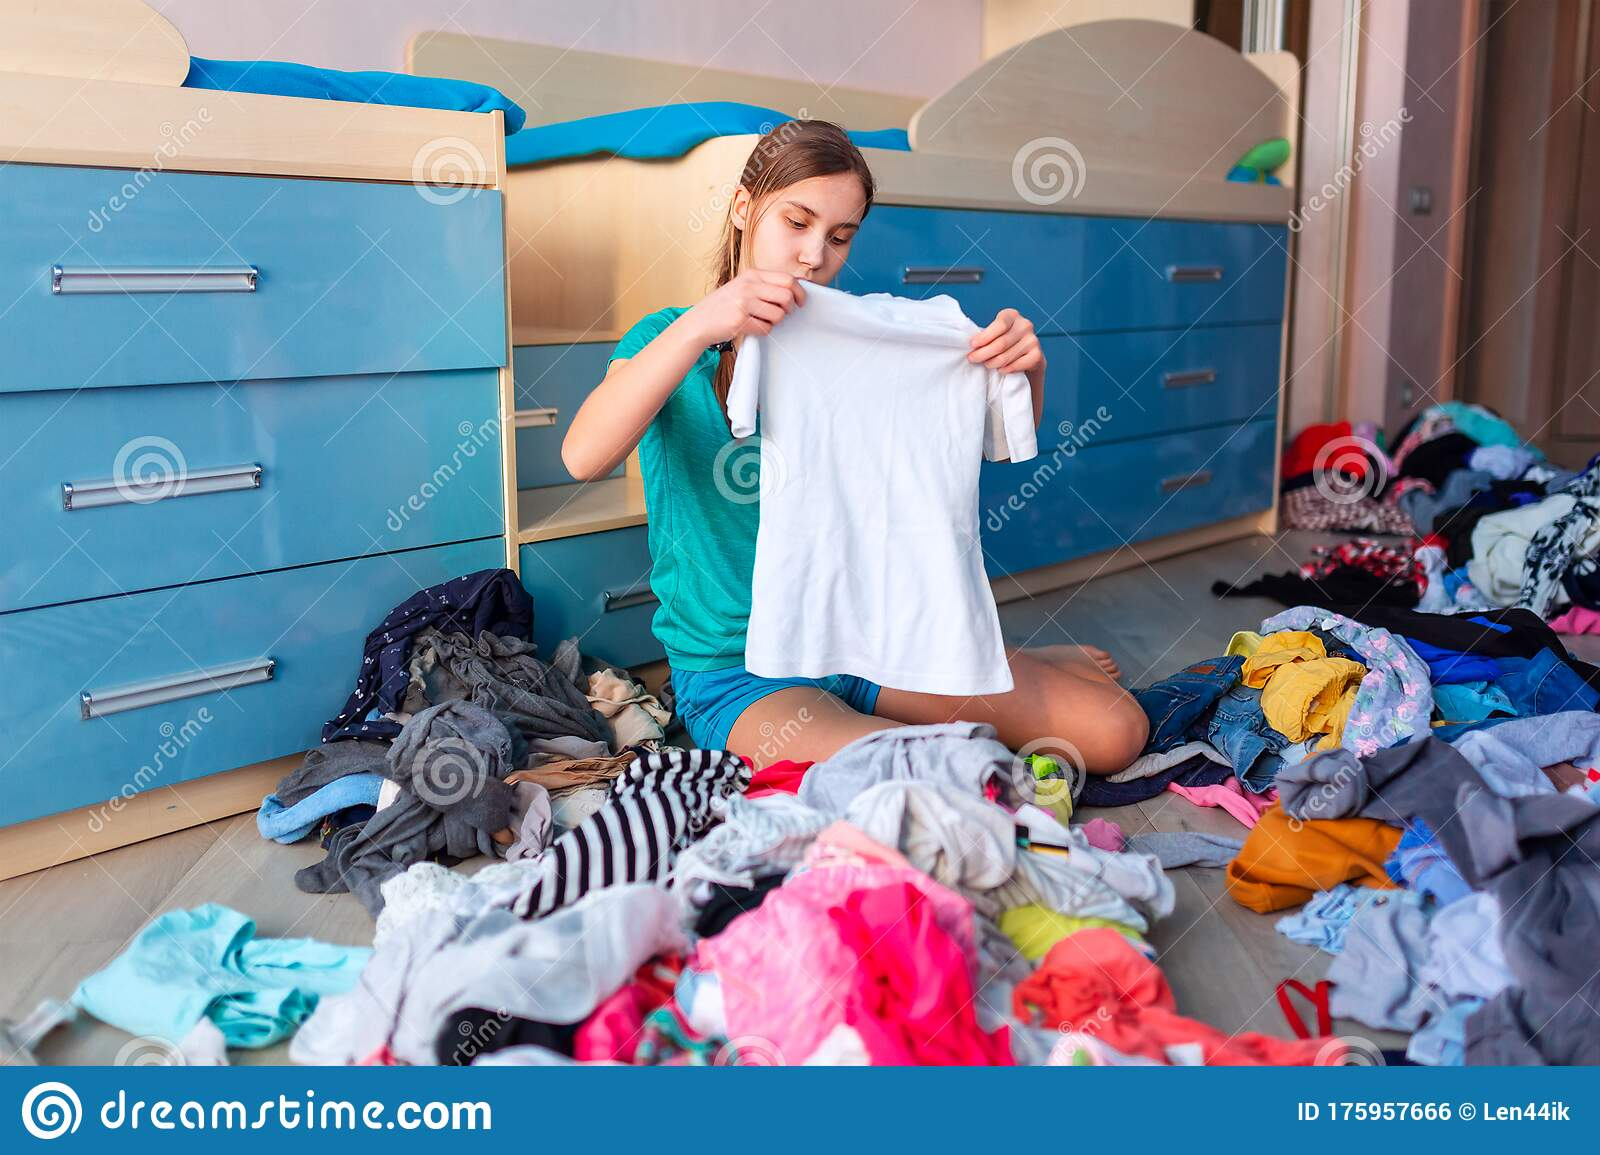 Beautiful Teenage Girl Folding Her Messy Clothes In A Her Bedroom Stock Photo Image Of Disorganized Mess 175957666